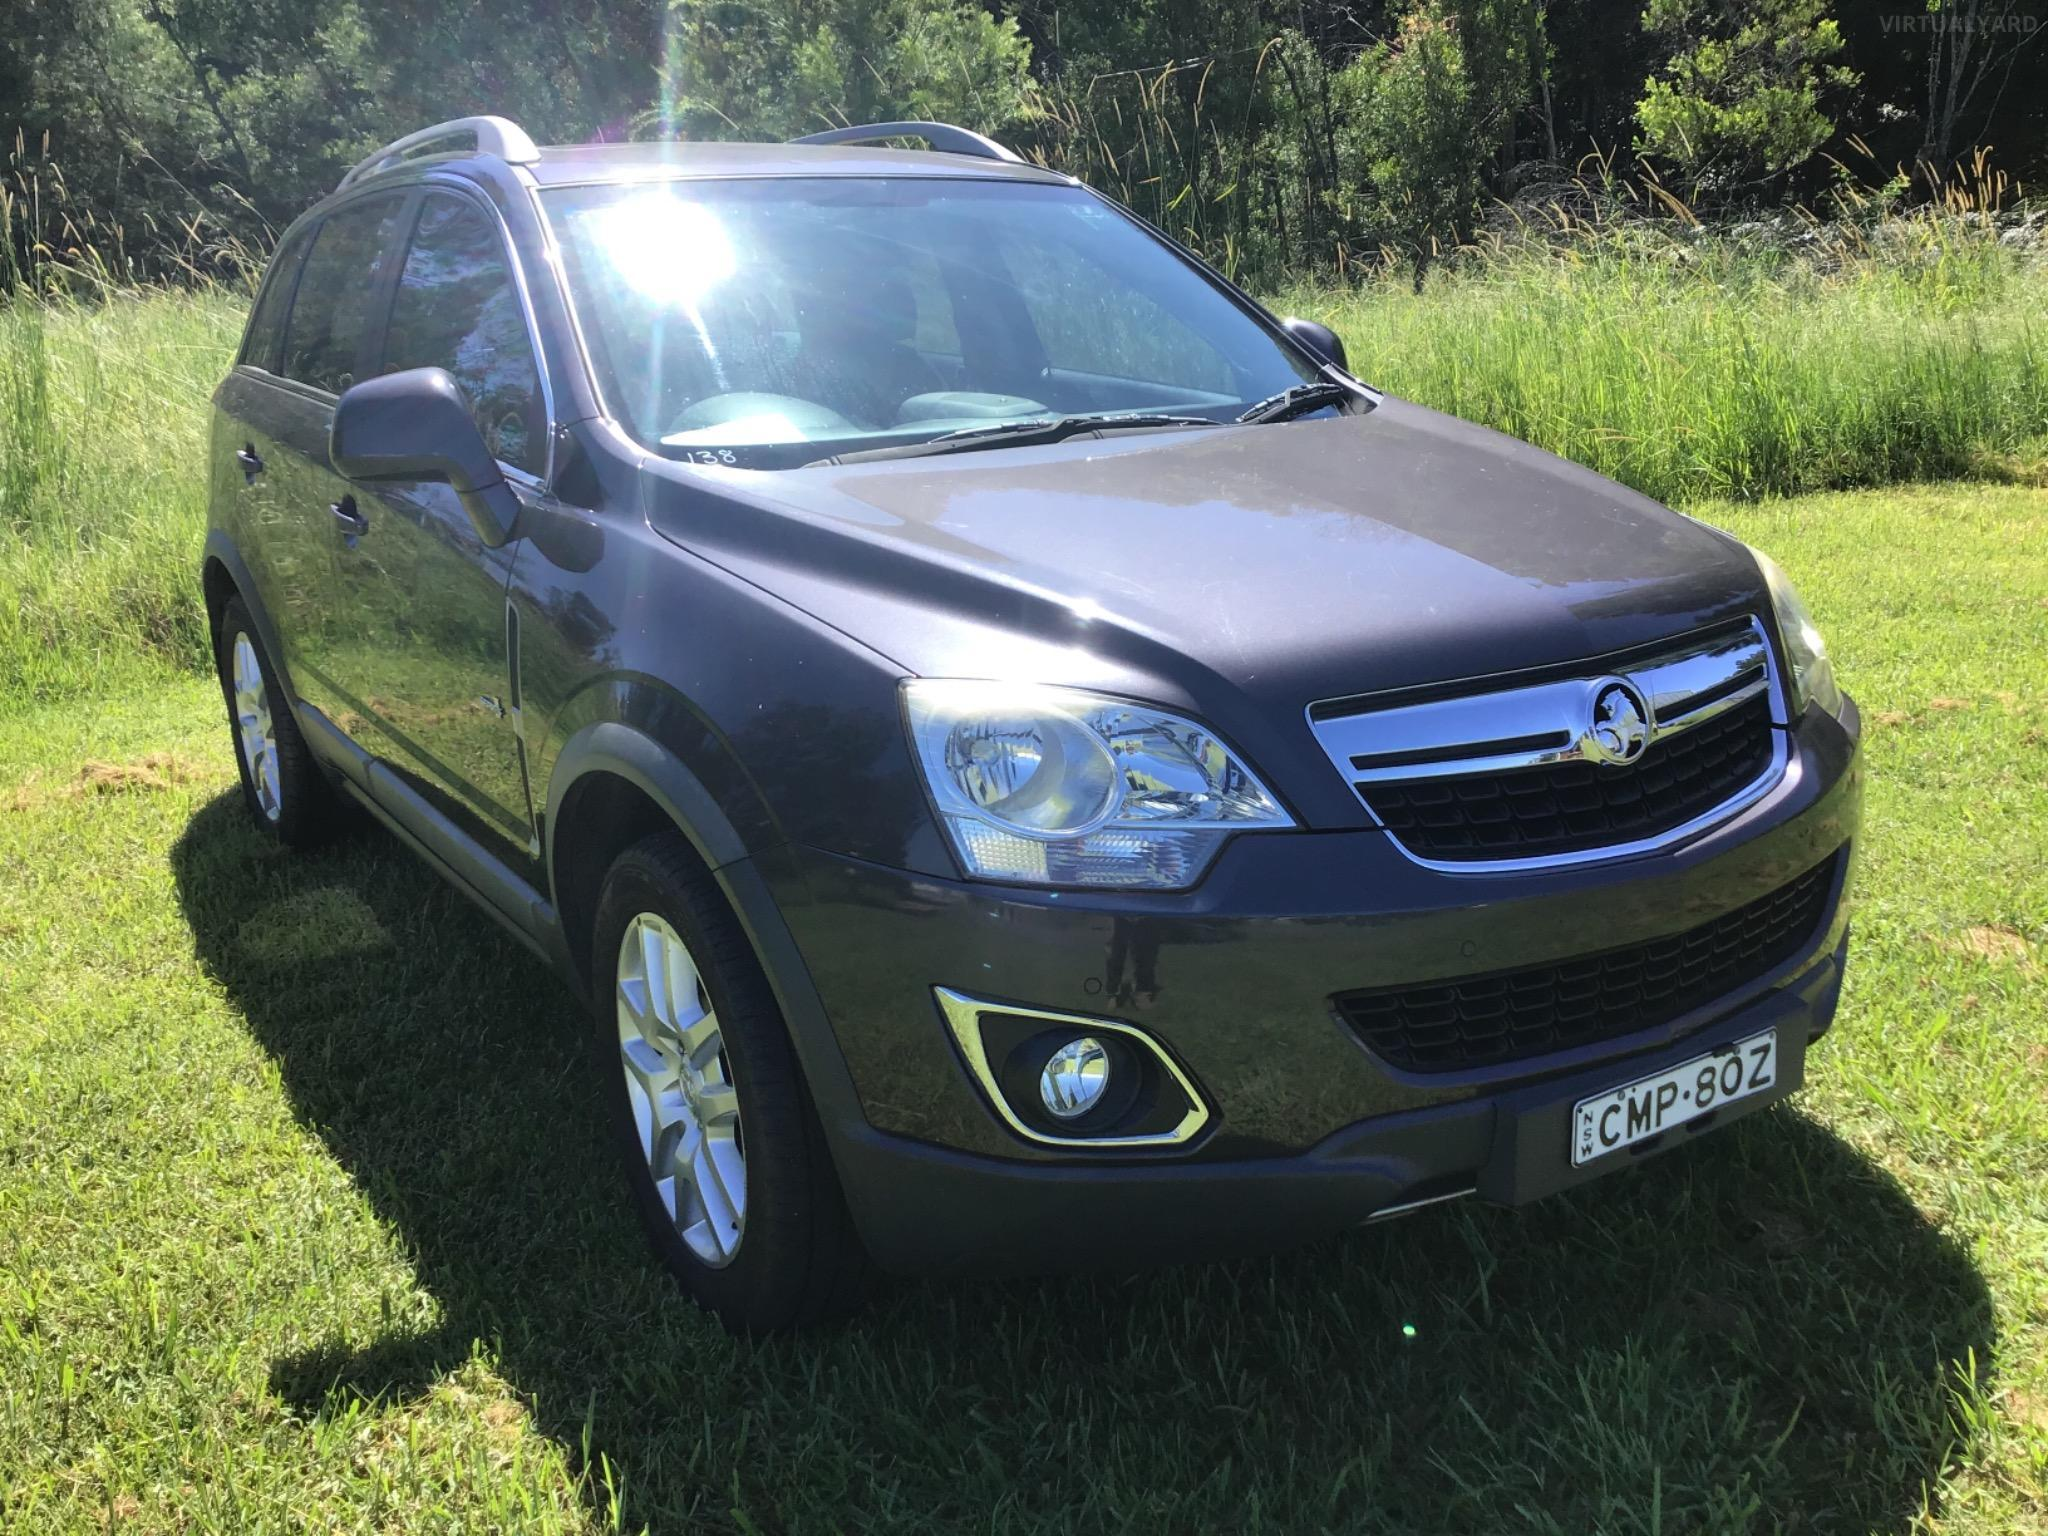 2013 Holden Captiva CG 5 Wagon 4dr Spts Auto 6sp 4x4 2.2DT Picture 8